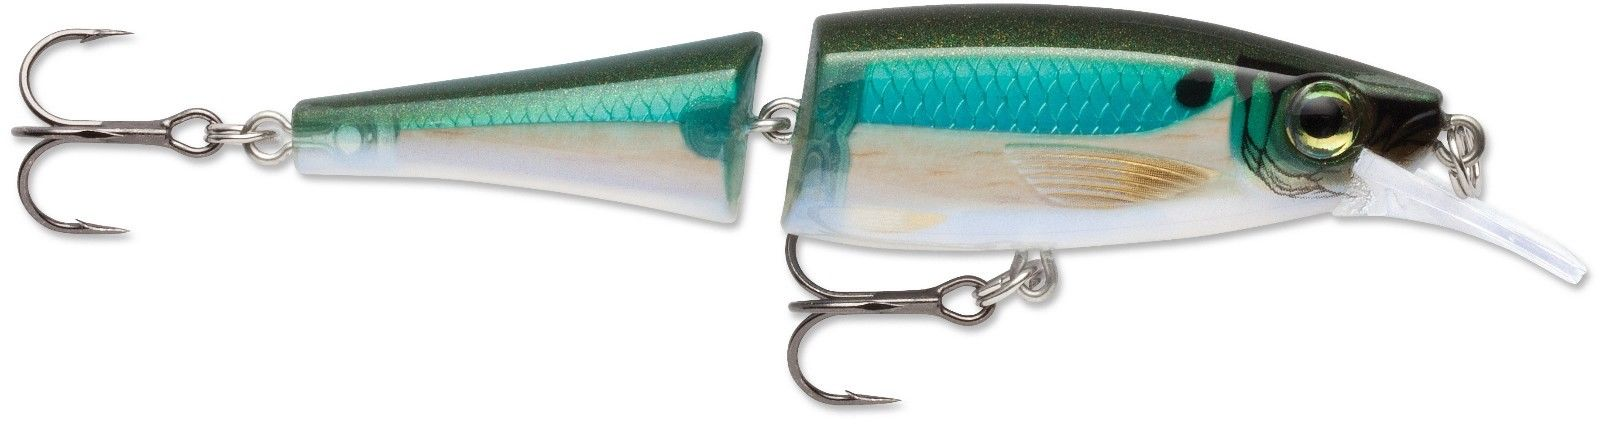 Rapala Balsa Xtreme BX Jointed Minnow 09 Medium Diving Jerkbait Blue Back Herring